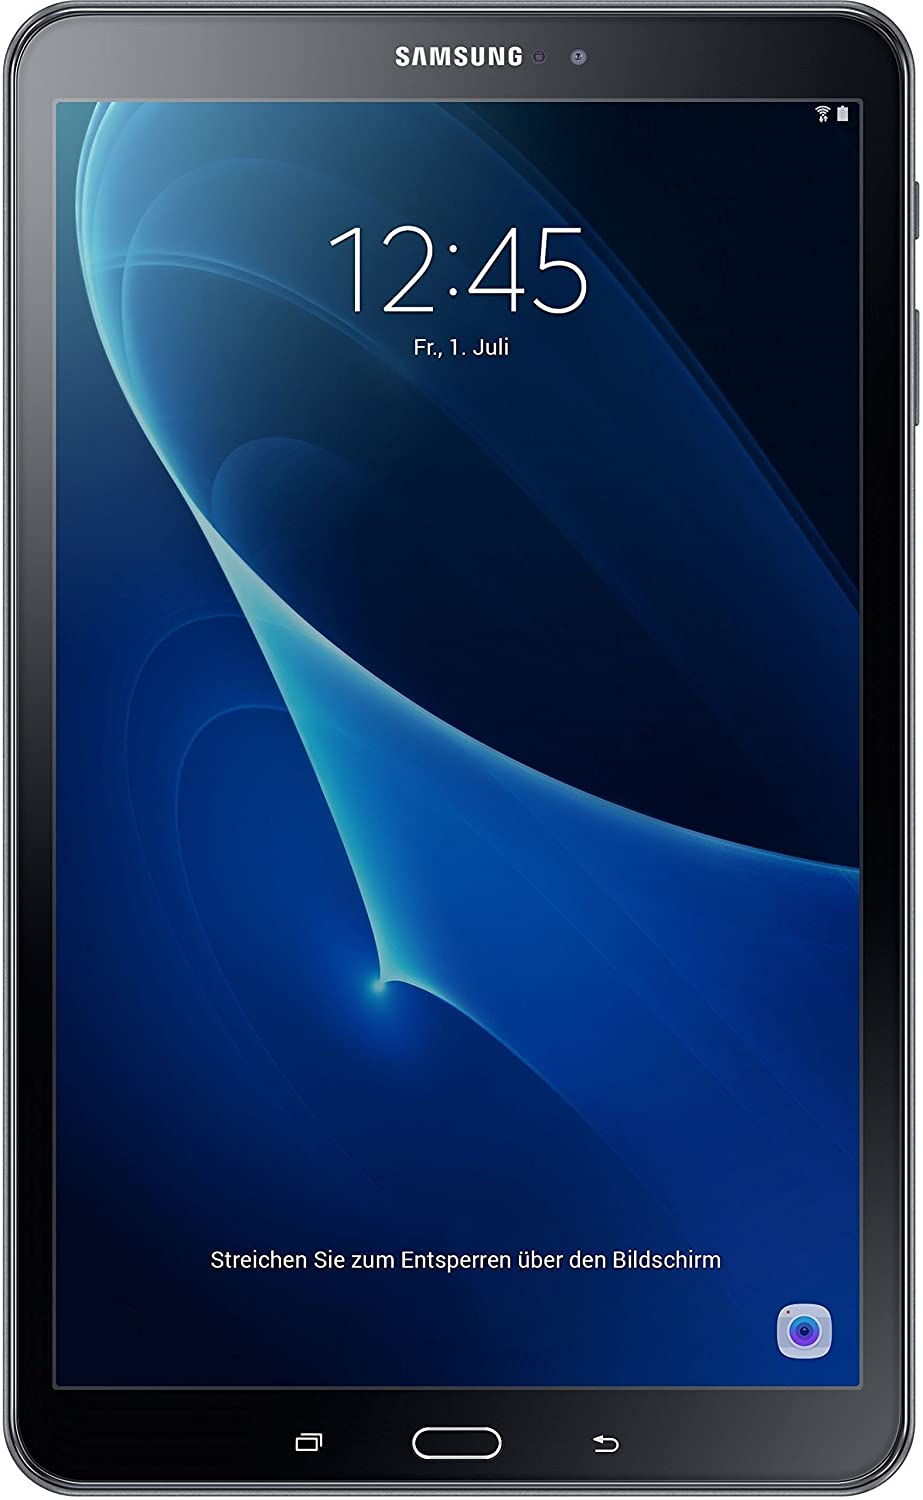 Samsung Galaxy TAB A 2016 10.1 SM-T580 WIFI 32GB Tablet Computer